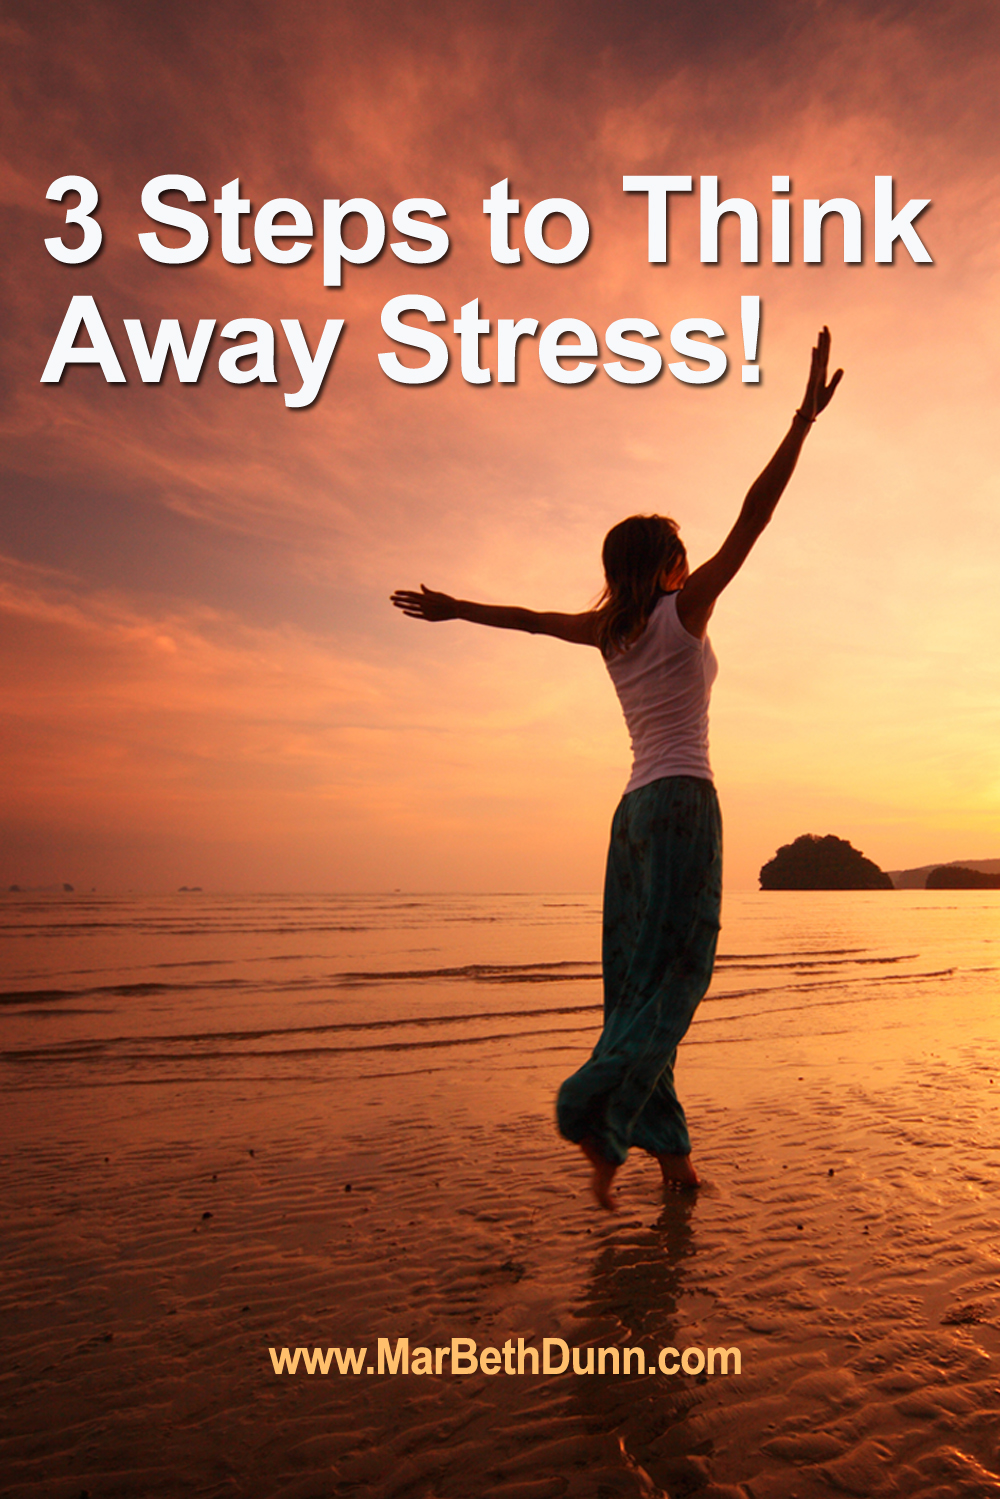 3 Steps to Think Your Stress Away!